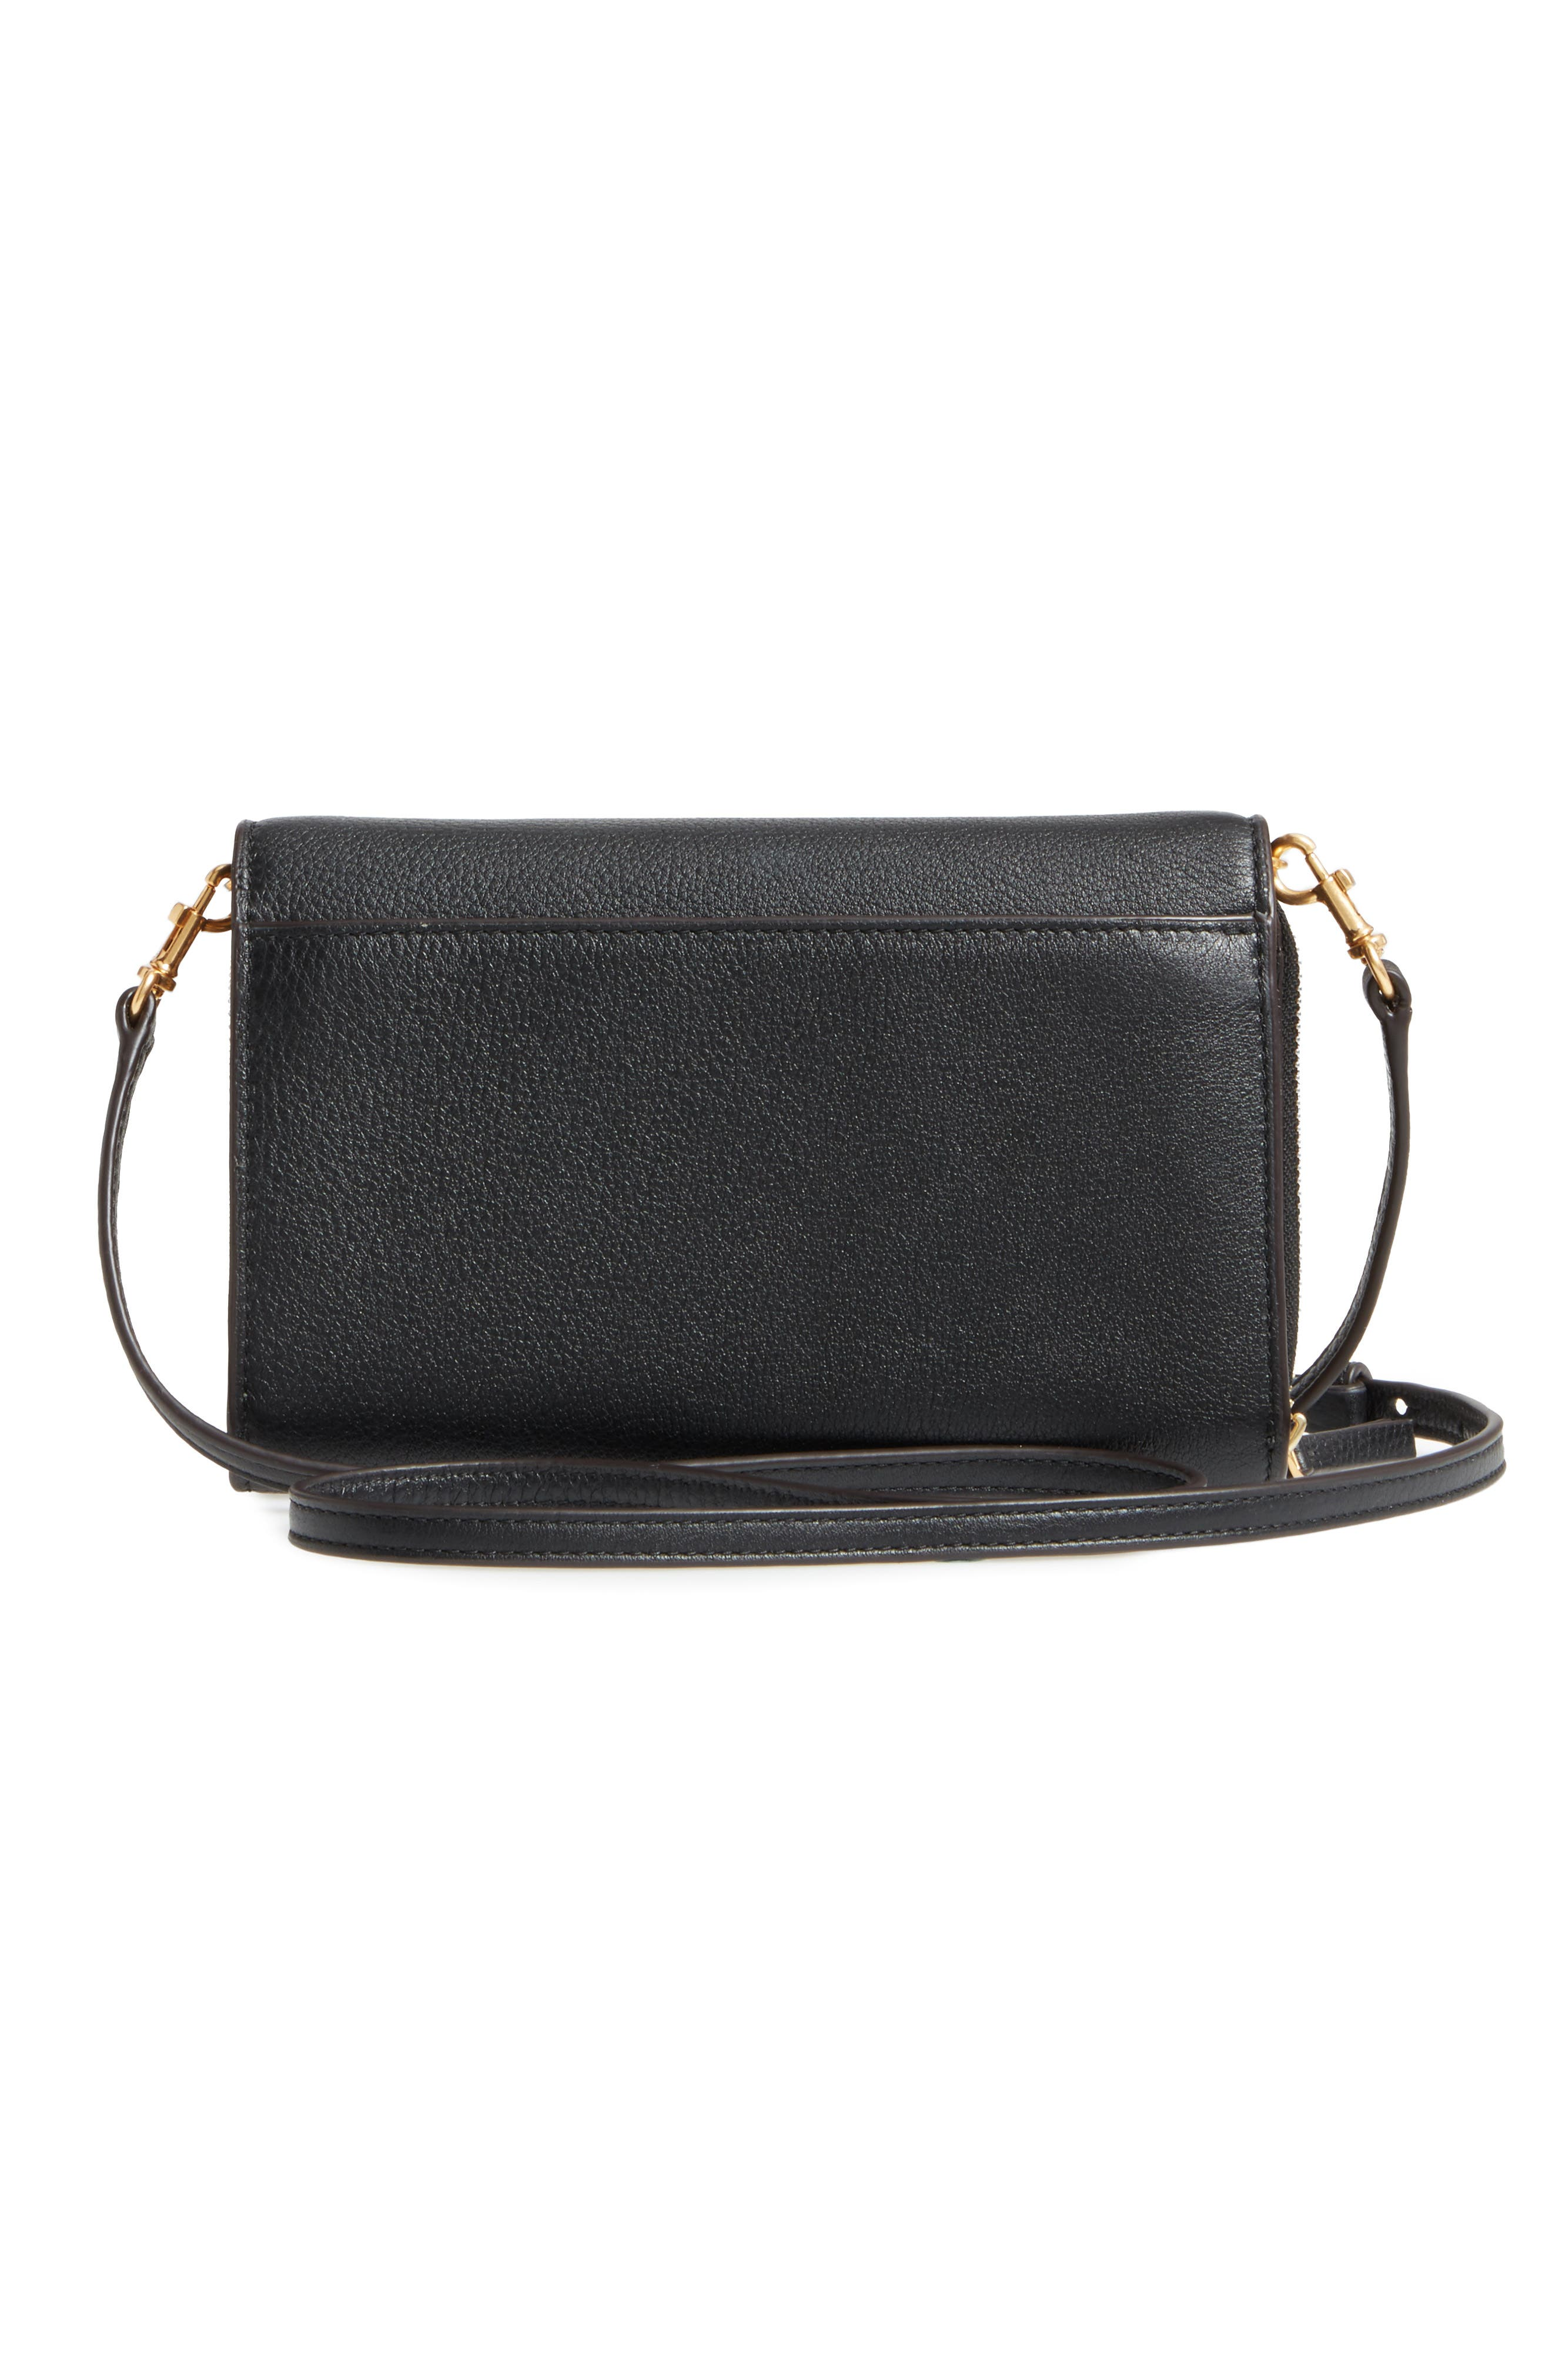 TORY BURCH, McGraw Leather Crossbody Wallet, Alternate thumbnail 3, color, 001